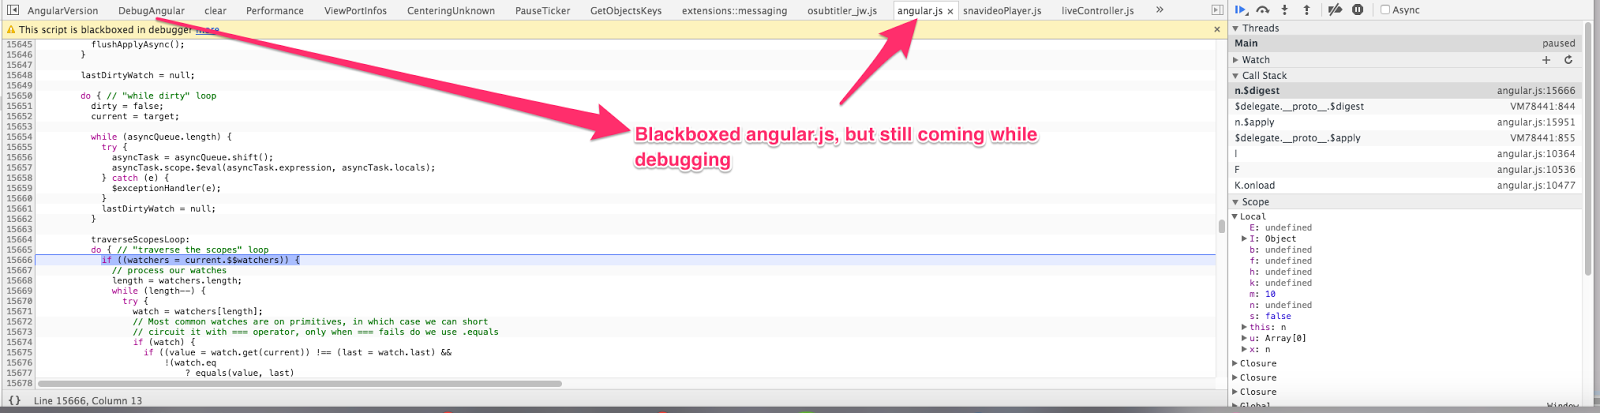 Chrome Debug Mode, Control is going to blackbox script